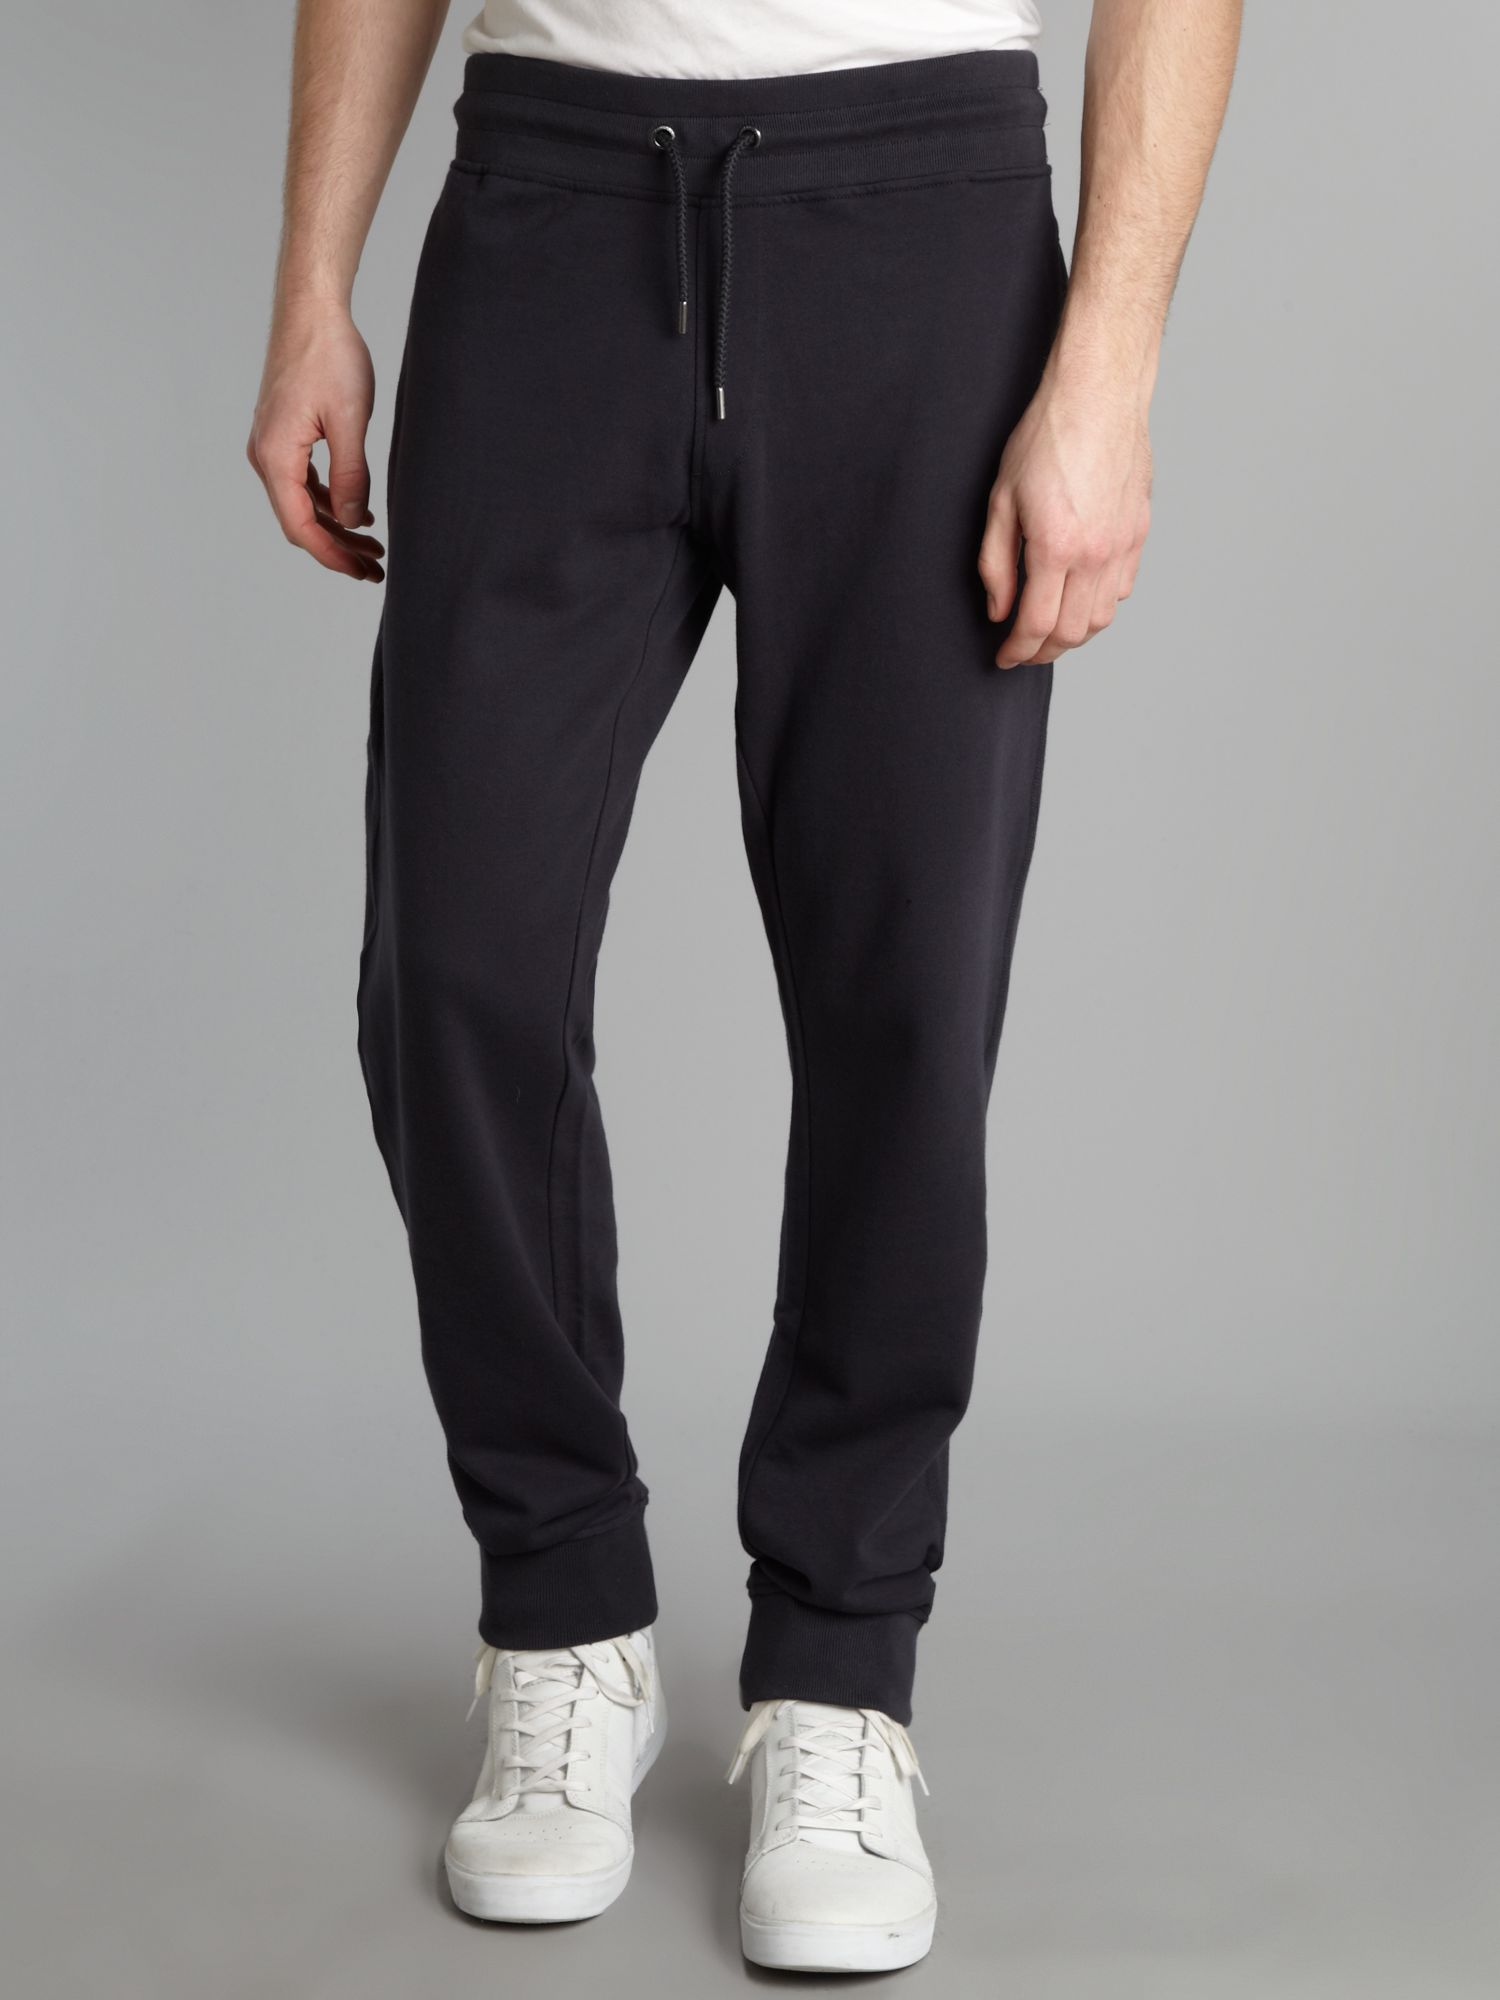 3 pocket tracksuit trousers